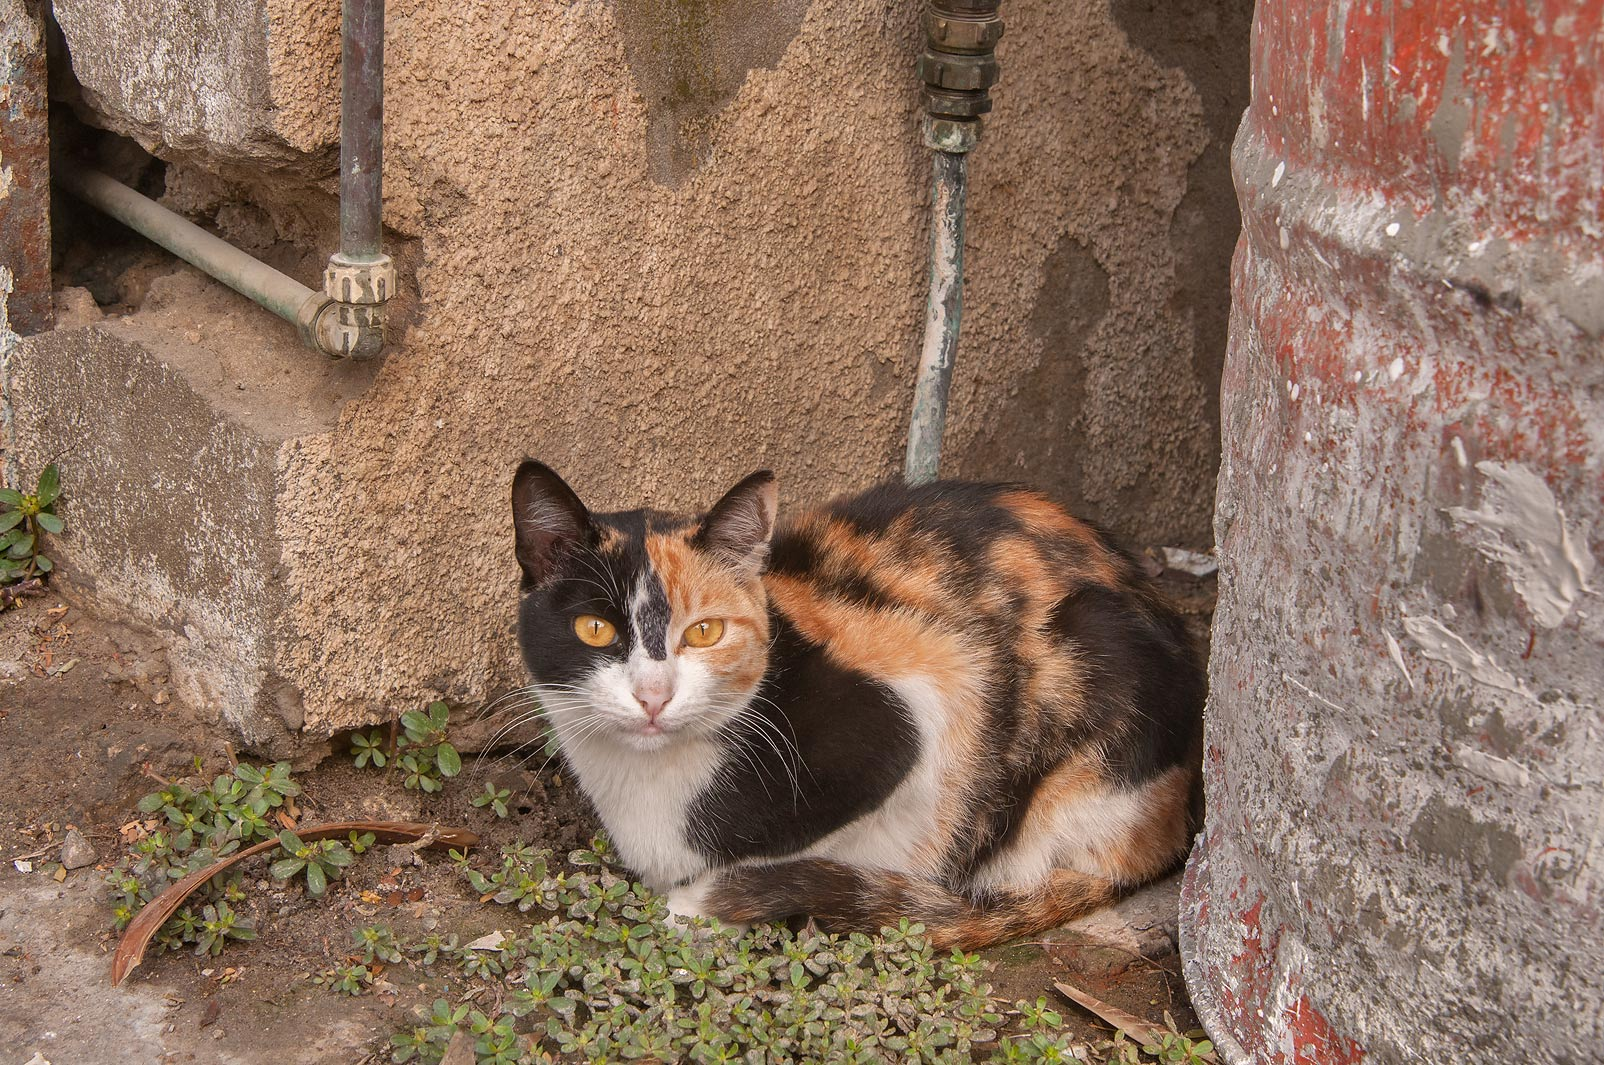 Calico cat at Al Diwan St., Musheirib area. Doha, Qatar